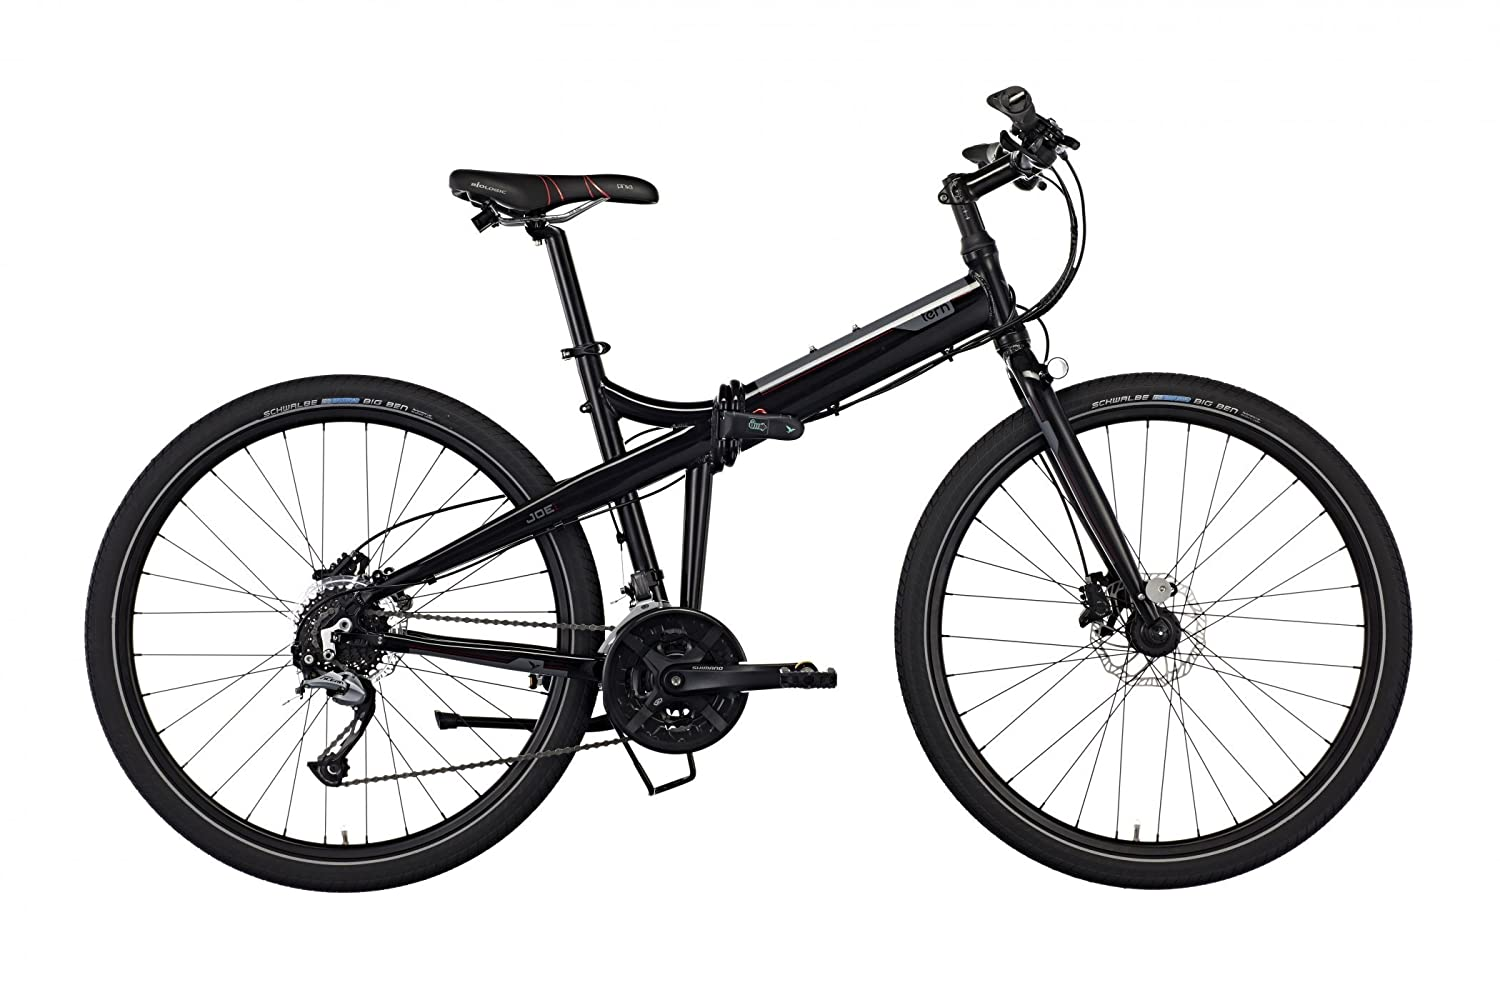 Tern Joe P27 27,5 Black/Red 2017 bicicleta plegable: Amazon.es: Deportes y aire libre